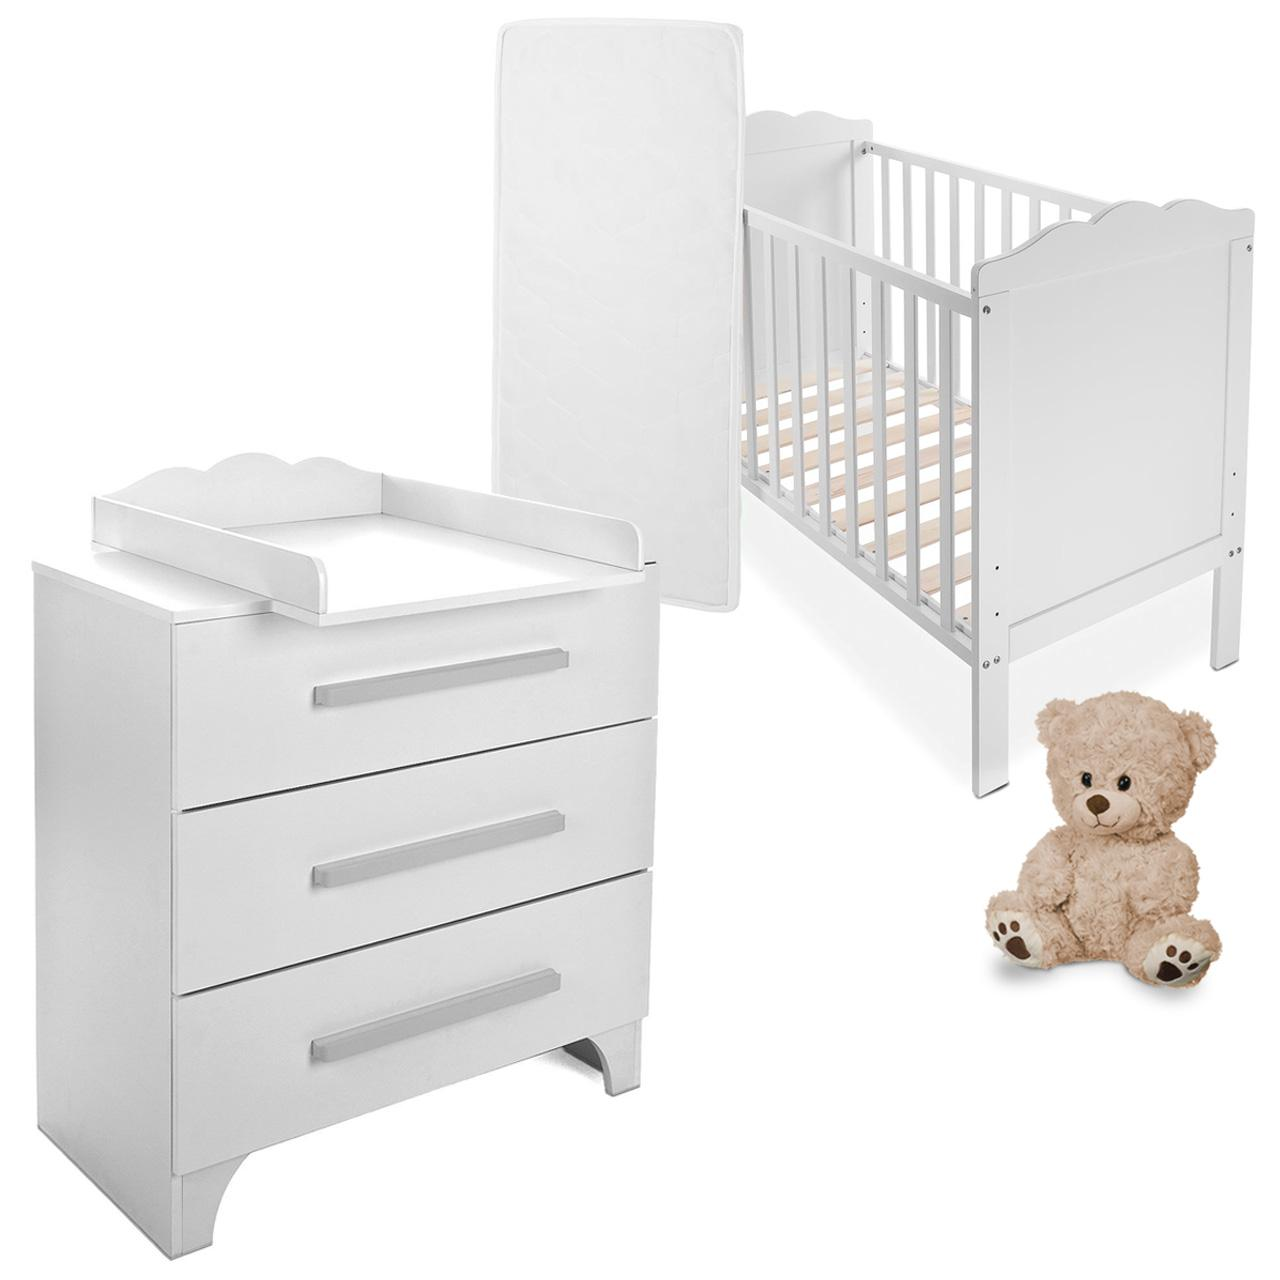 babyzimmer babybett mit wickelkommode gitterbett. Black Bedroom Furniture Sets. Home Design Ideas